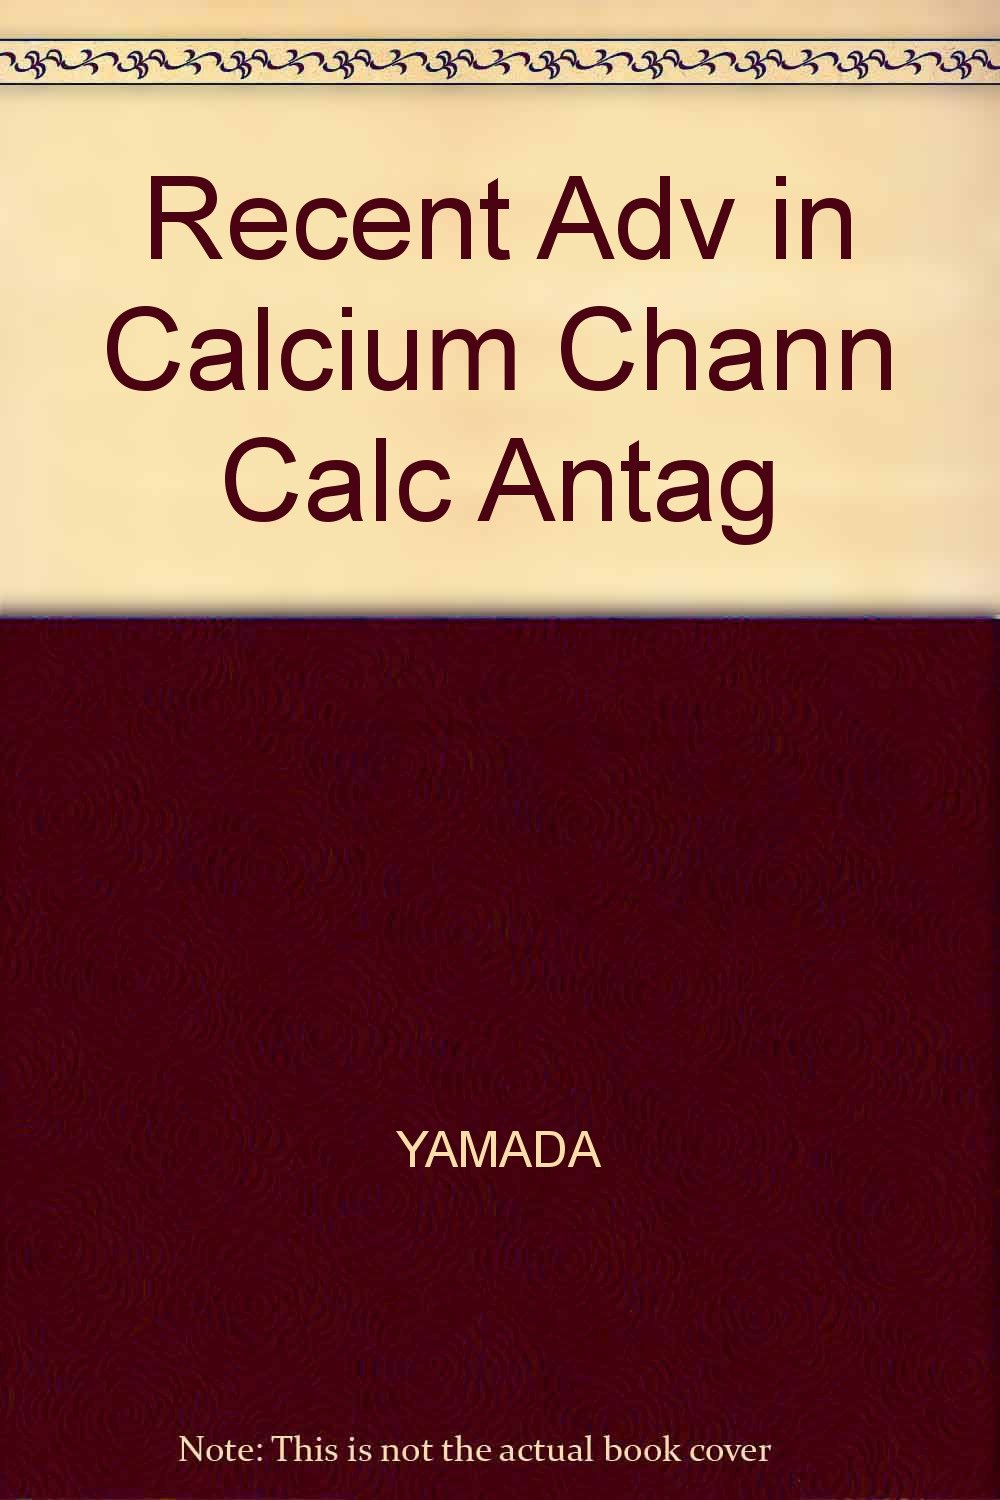 Recent Advances in Calcium Channels and Calcium Antagonists: Proceedings of the Japan-U.S.A. Symposium on Cardiovascular Drugs